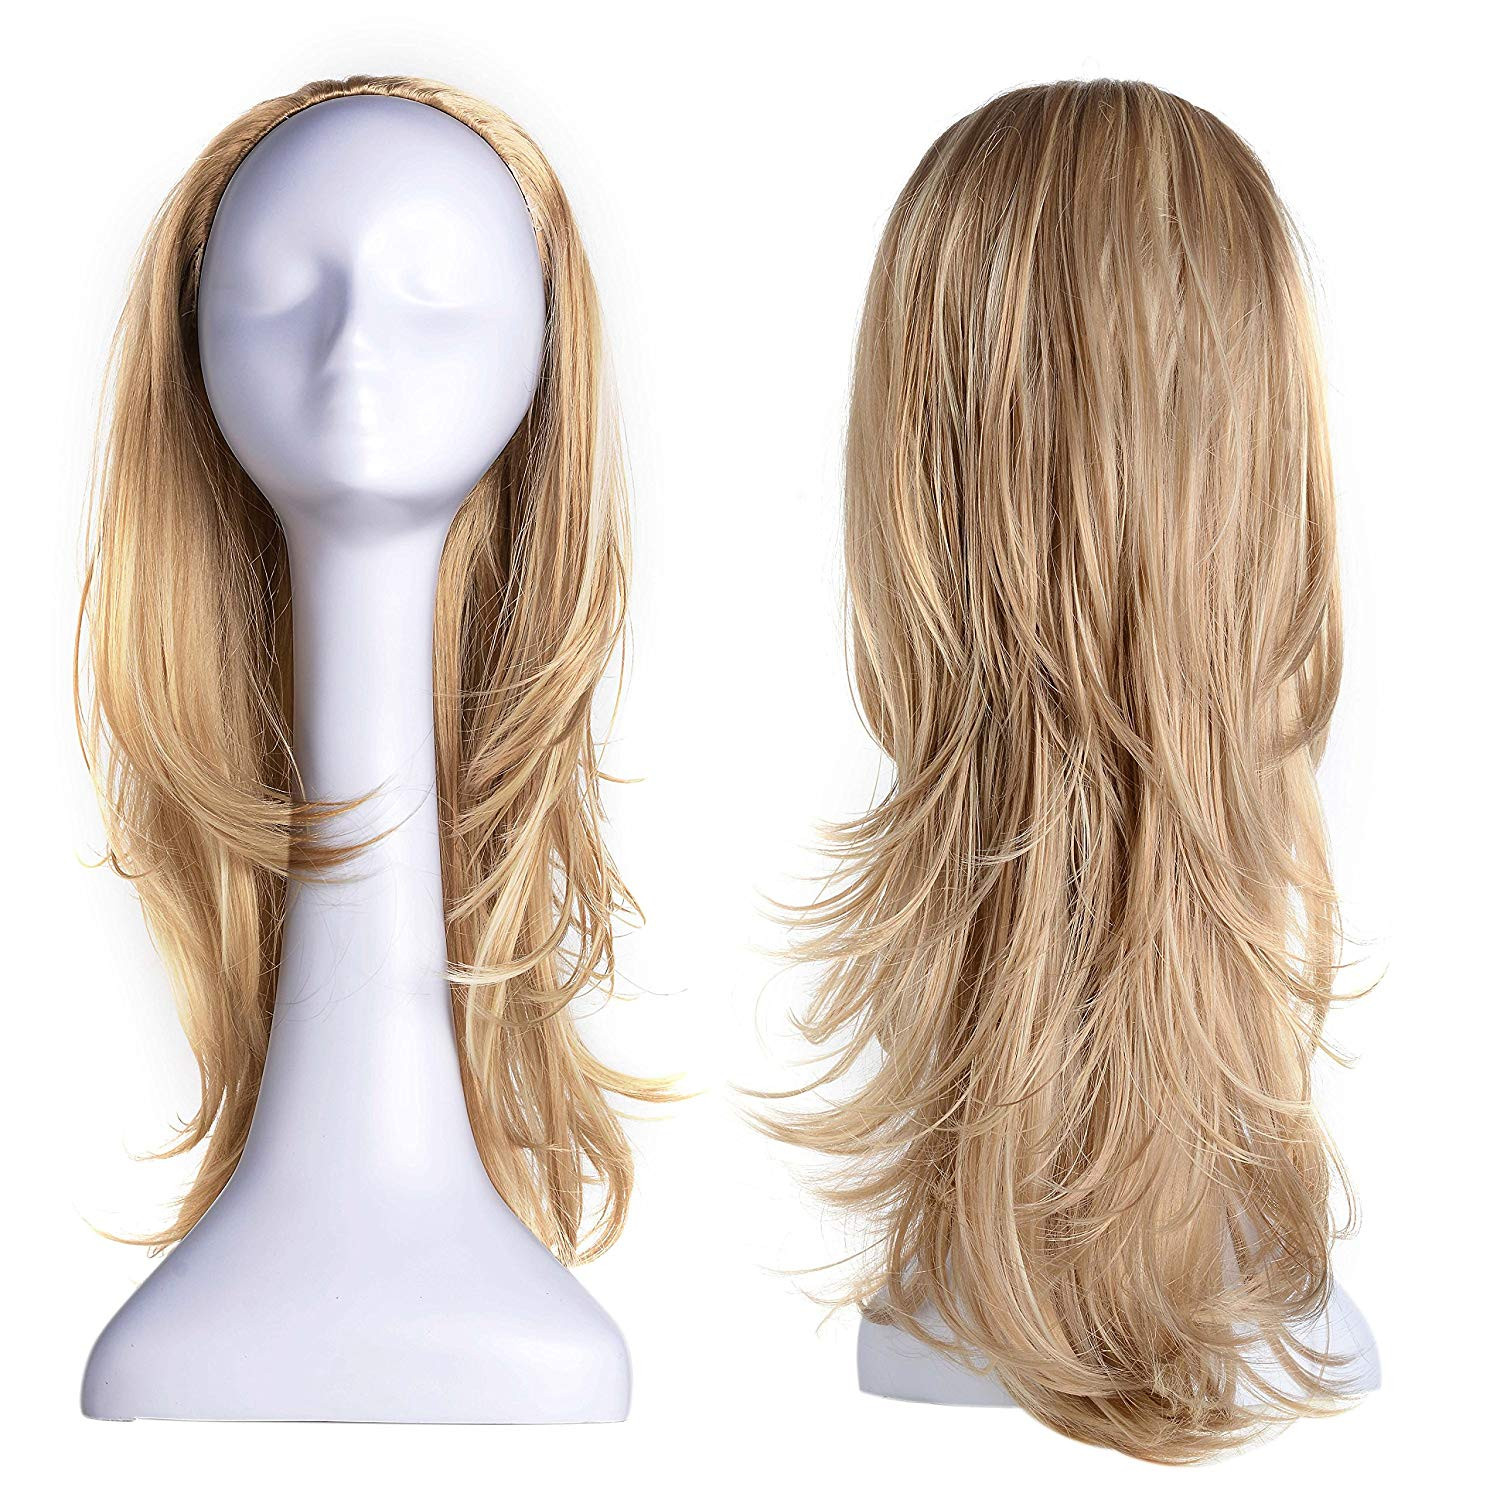 "OneDor 22"" Slight Curly 3/4 Ladies Half Wig Kanekalon Hair Synthetic Wigs with Comb on a mesh head cap (R1488H)"